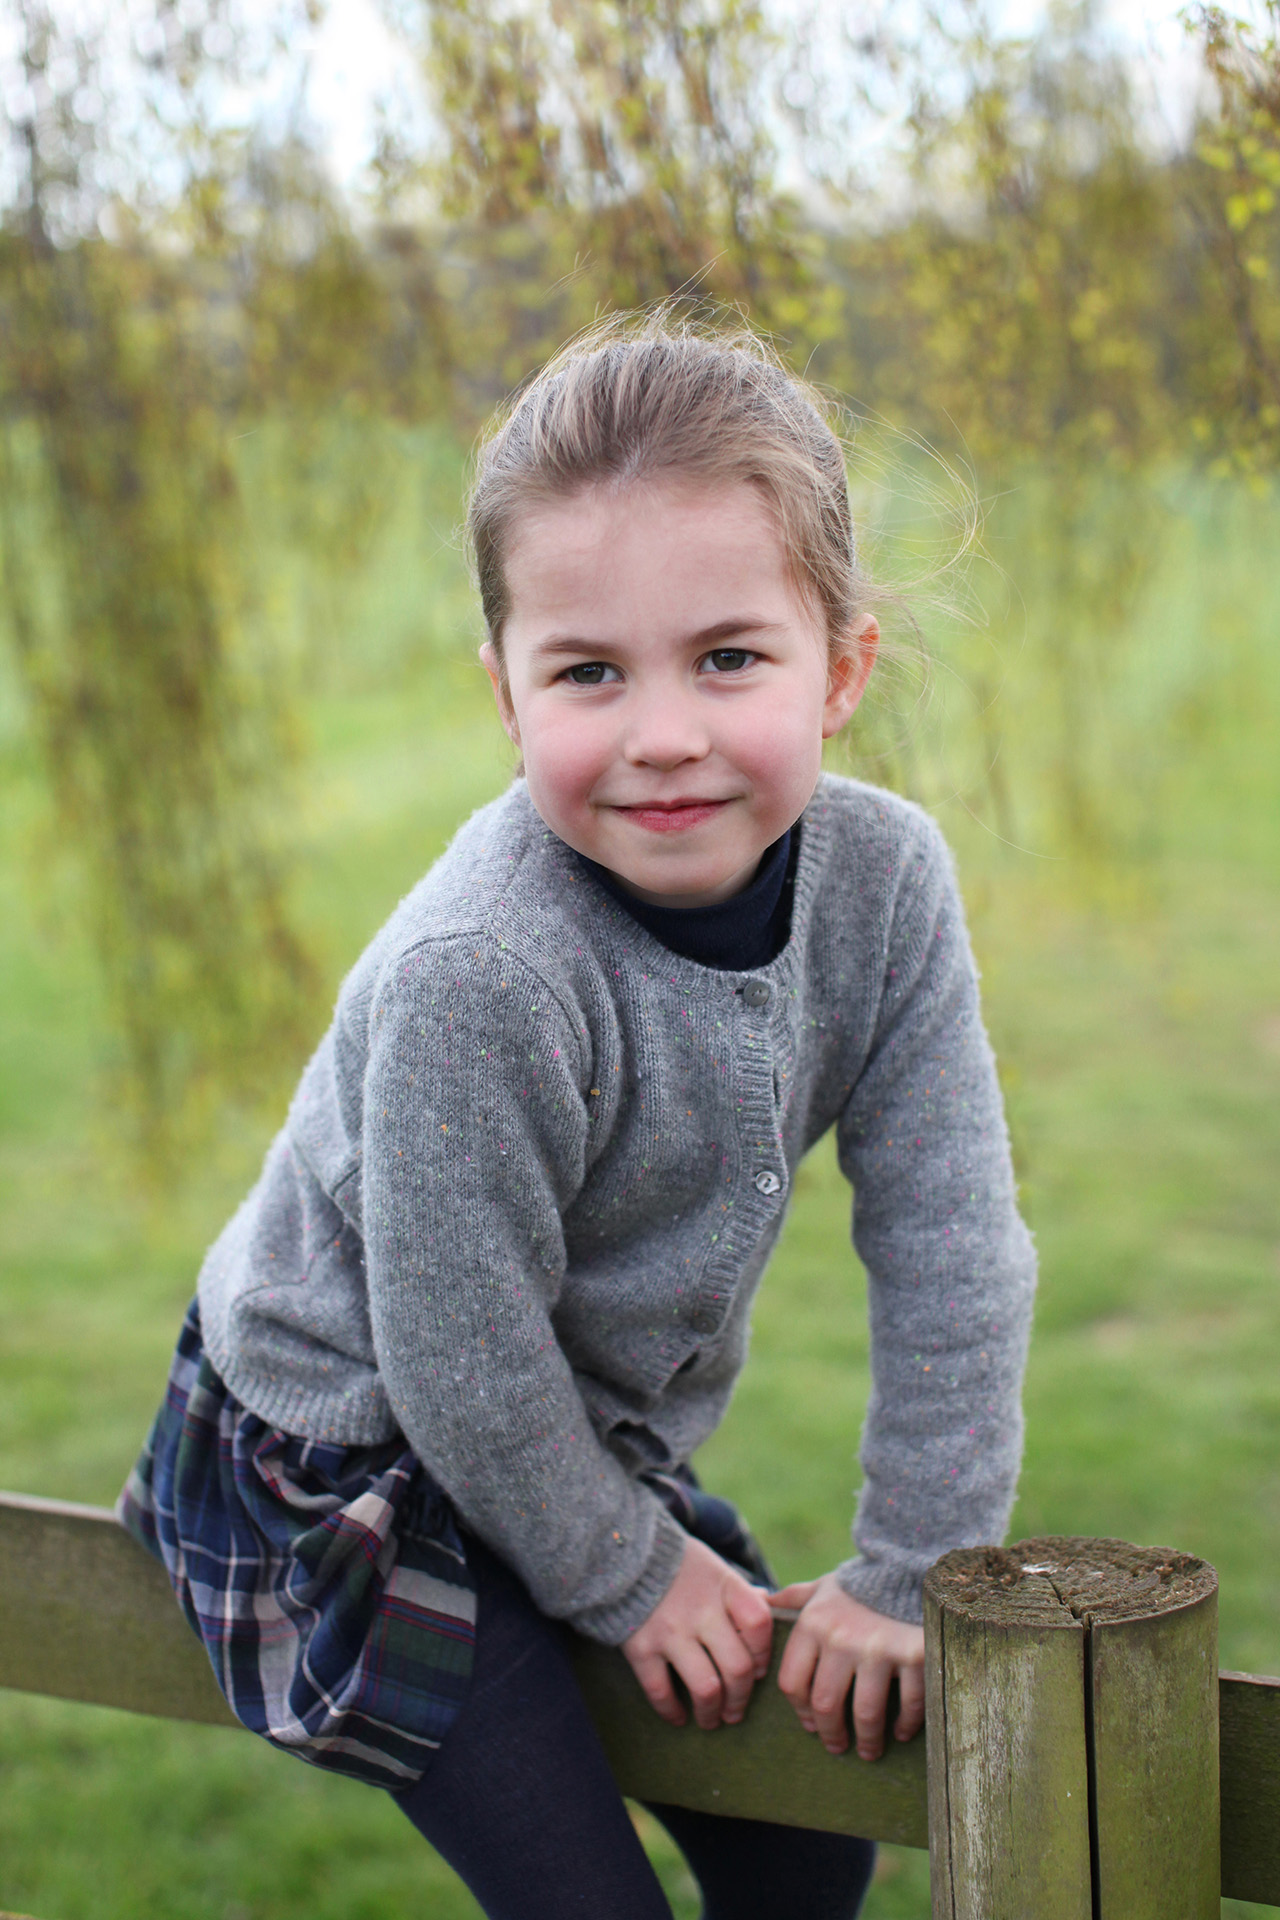 princess charlotte sitting on a fence in the country